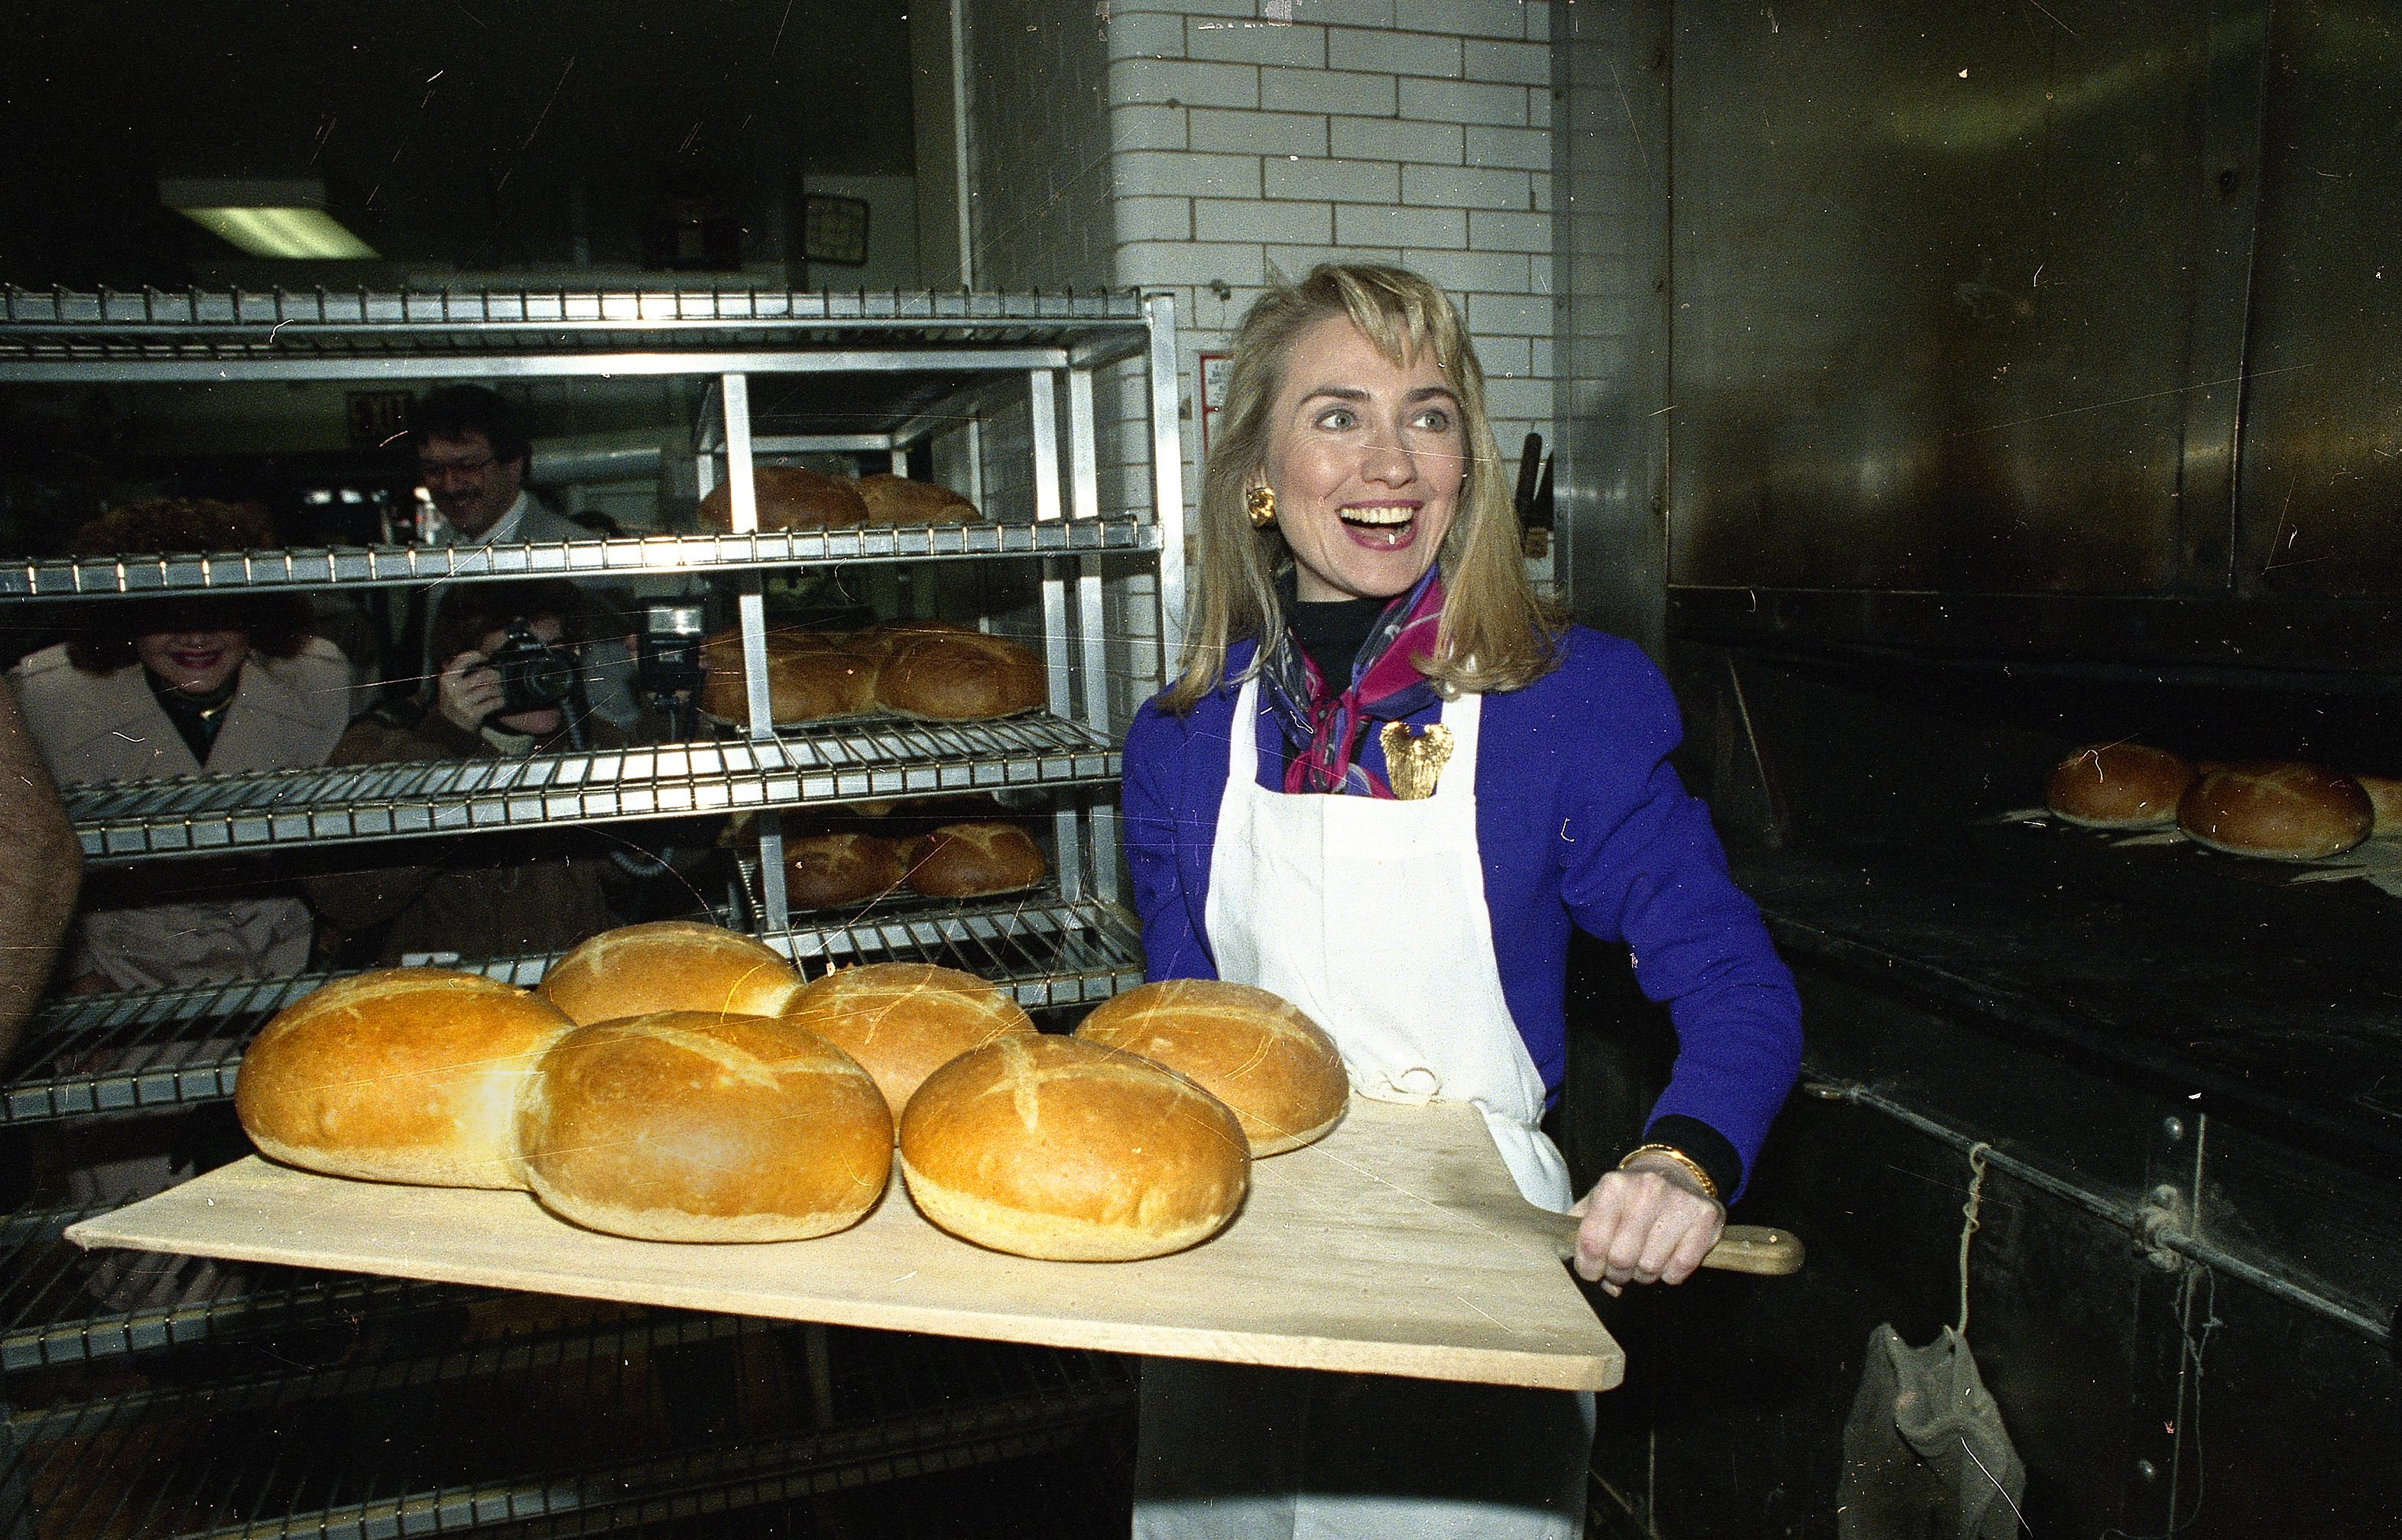 Hillary Rodham Clinton, wife of Democratic presidential hopeful BIll Clinton, removes several loaves of fresh bread from the oven of Panetteria Bakery in the Bronx borough of New York, April 3, 1992. Mrs. Clinton is campaigning in New York for her husband as the candidates prepare for New York's primary.